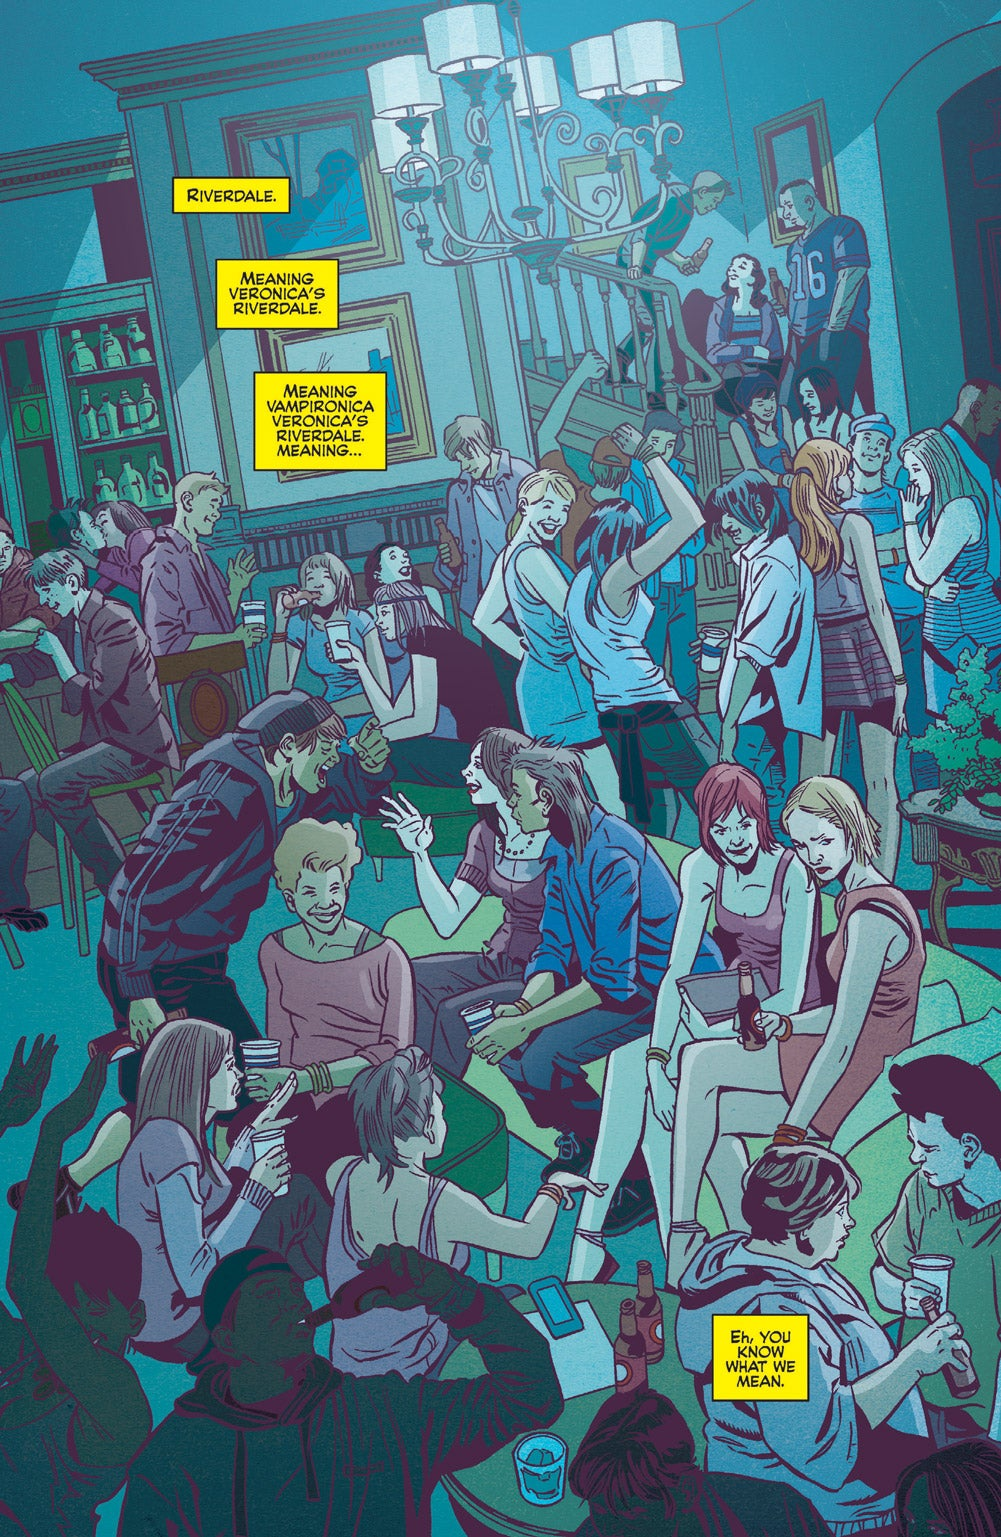 Image: Pat and Tim Kennedy, Bob Smith, Matt Herms, and Jack Morelli, Archie Comics